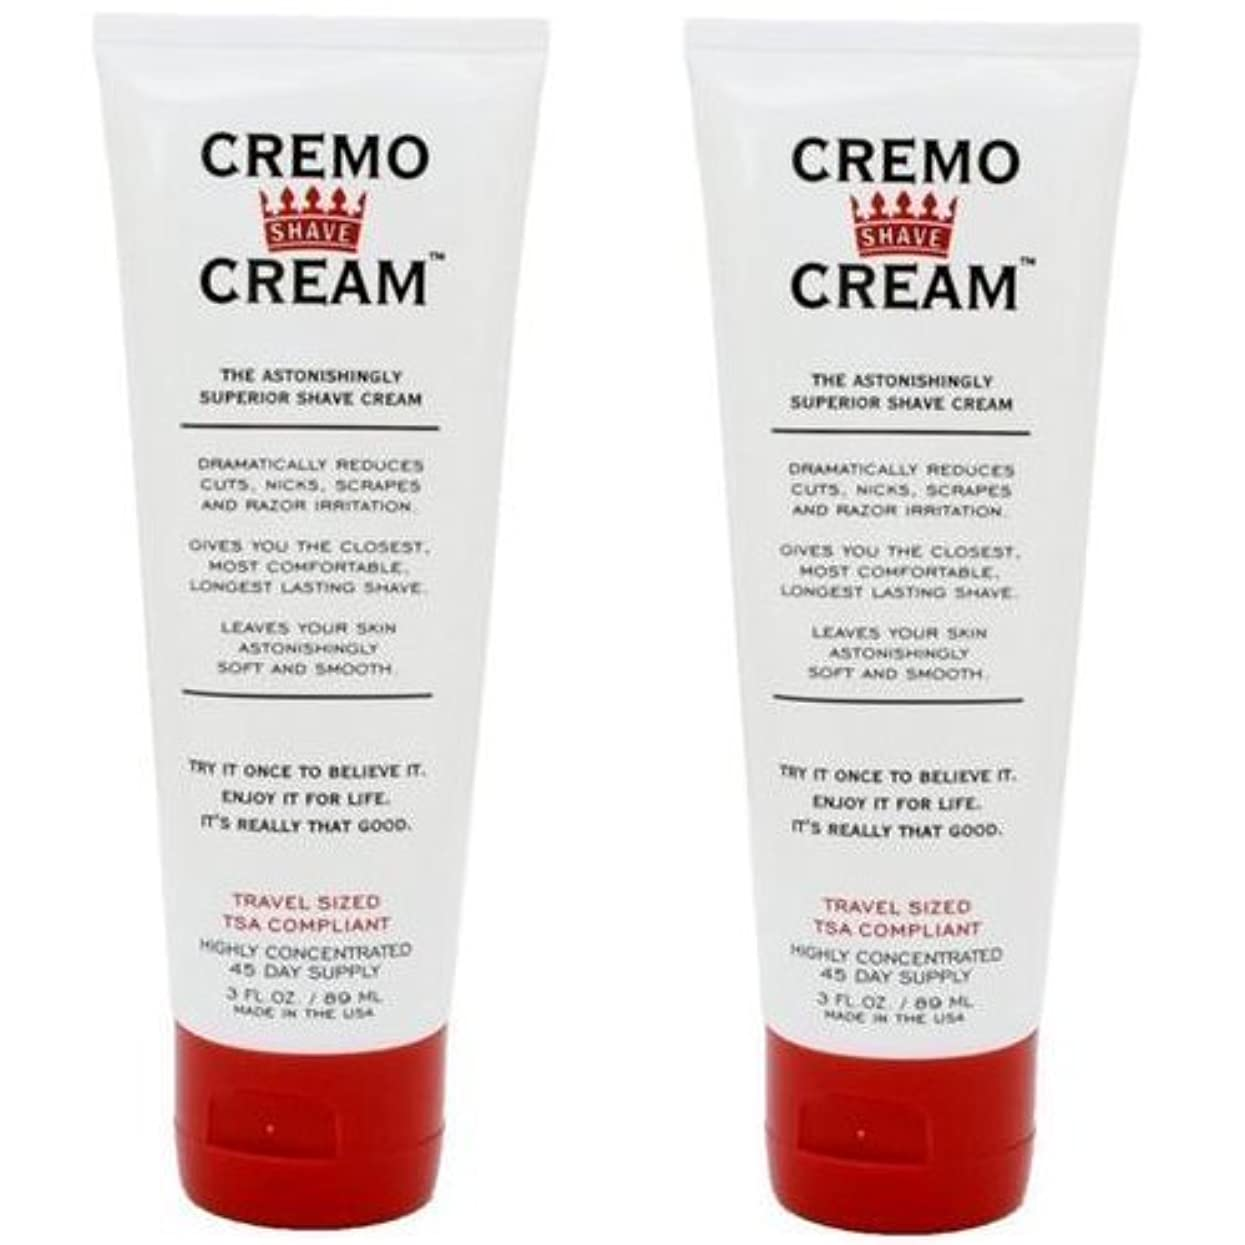 栄光のバブル八百屋Cremo Original Shave Cream Astonishingly Superior Shaving Cream for Men Travel Size 3 Fluid Ounce (2 Pack) [並行輸入品]